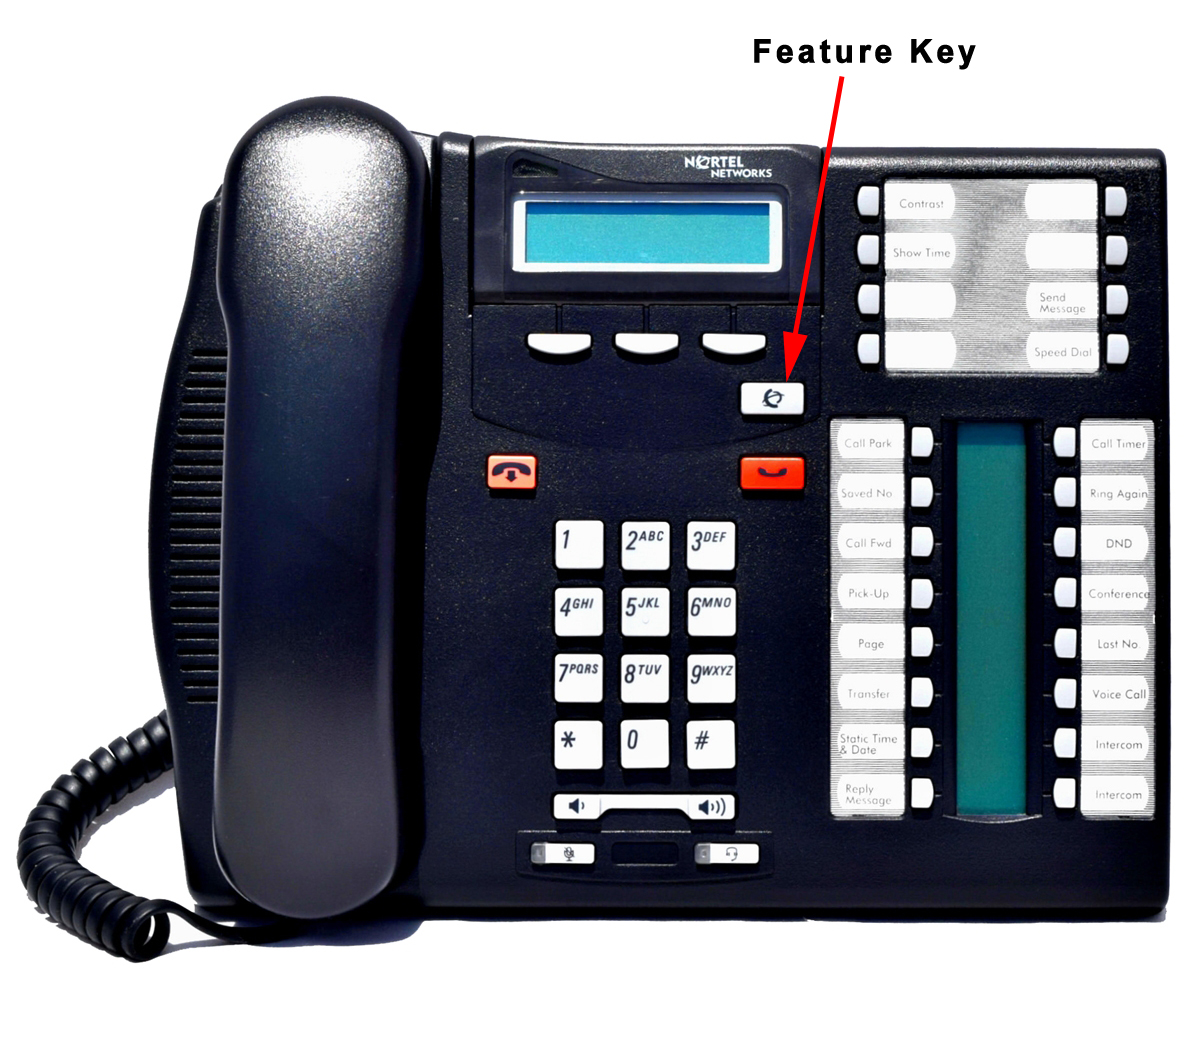 Nortel Digital Phone with Feature key